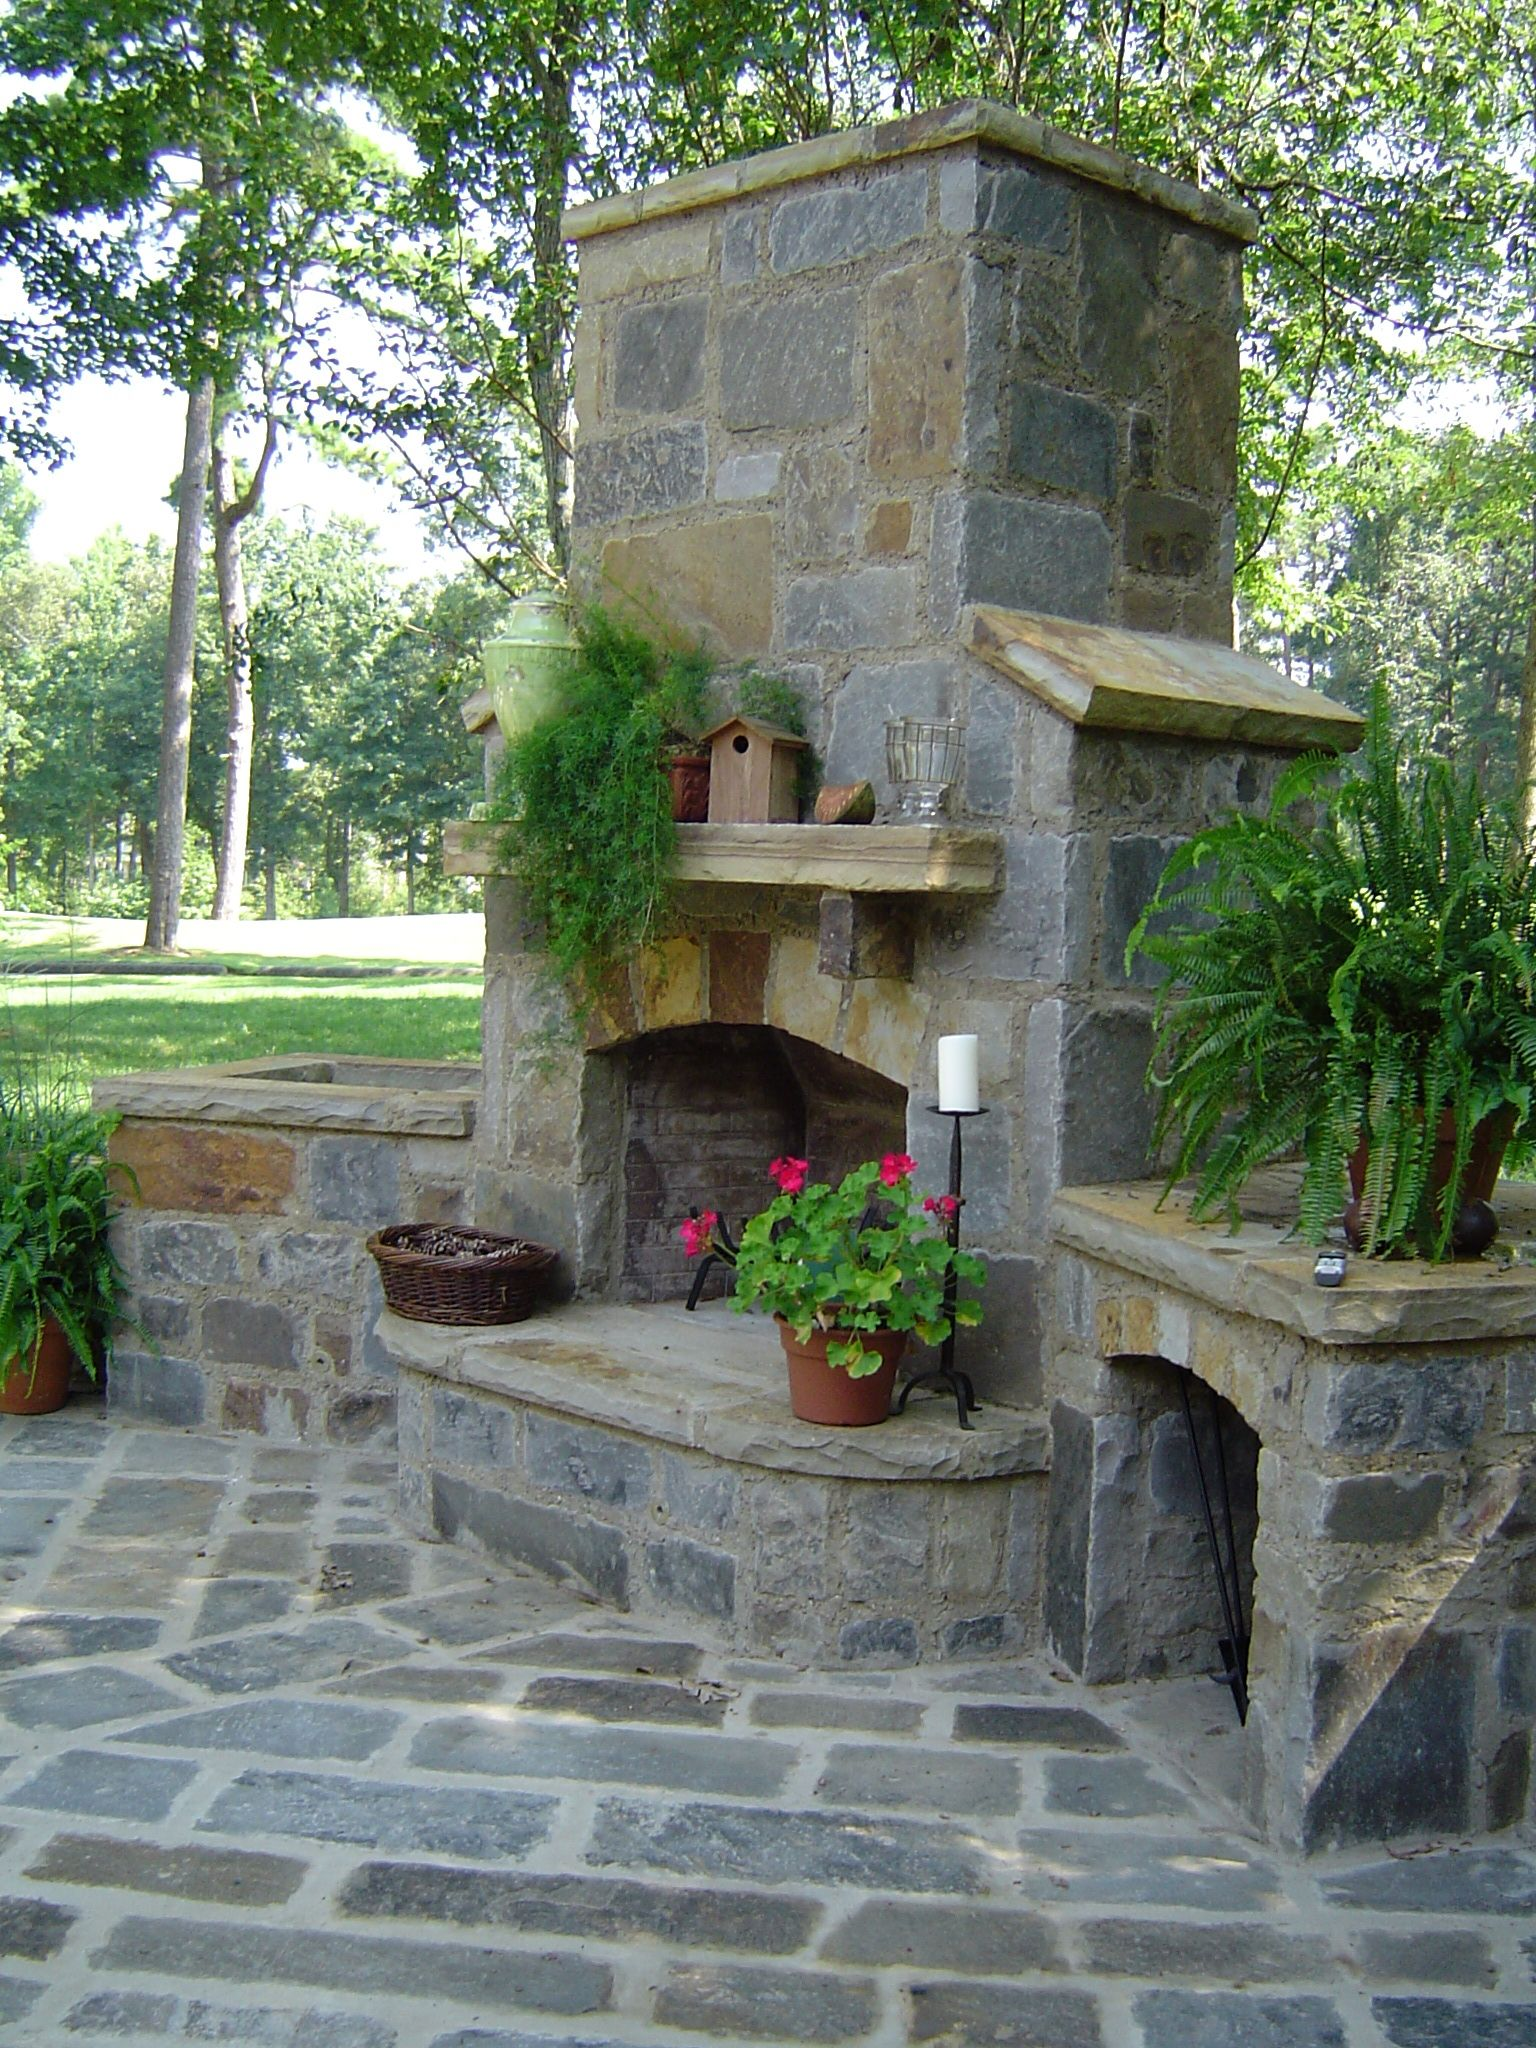 Liked the curved hearth and stonework maybe put an outside storage